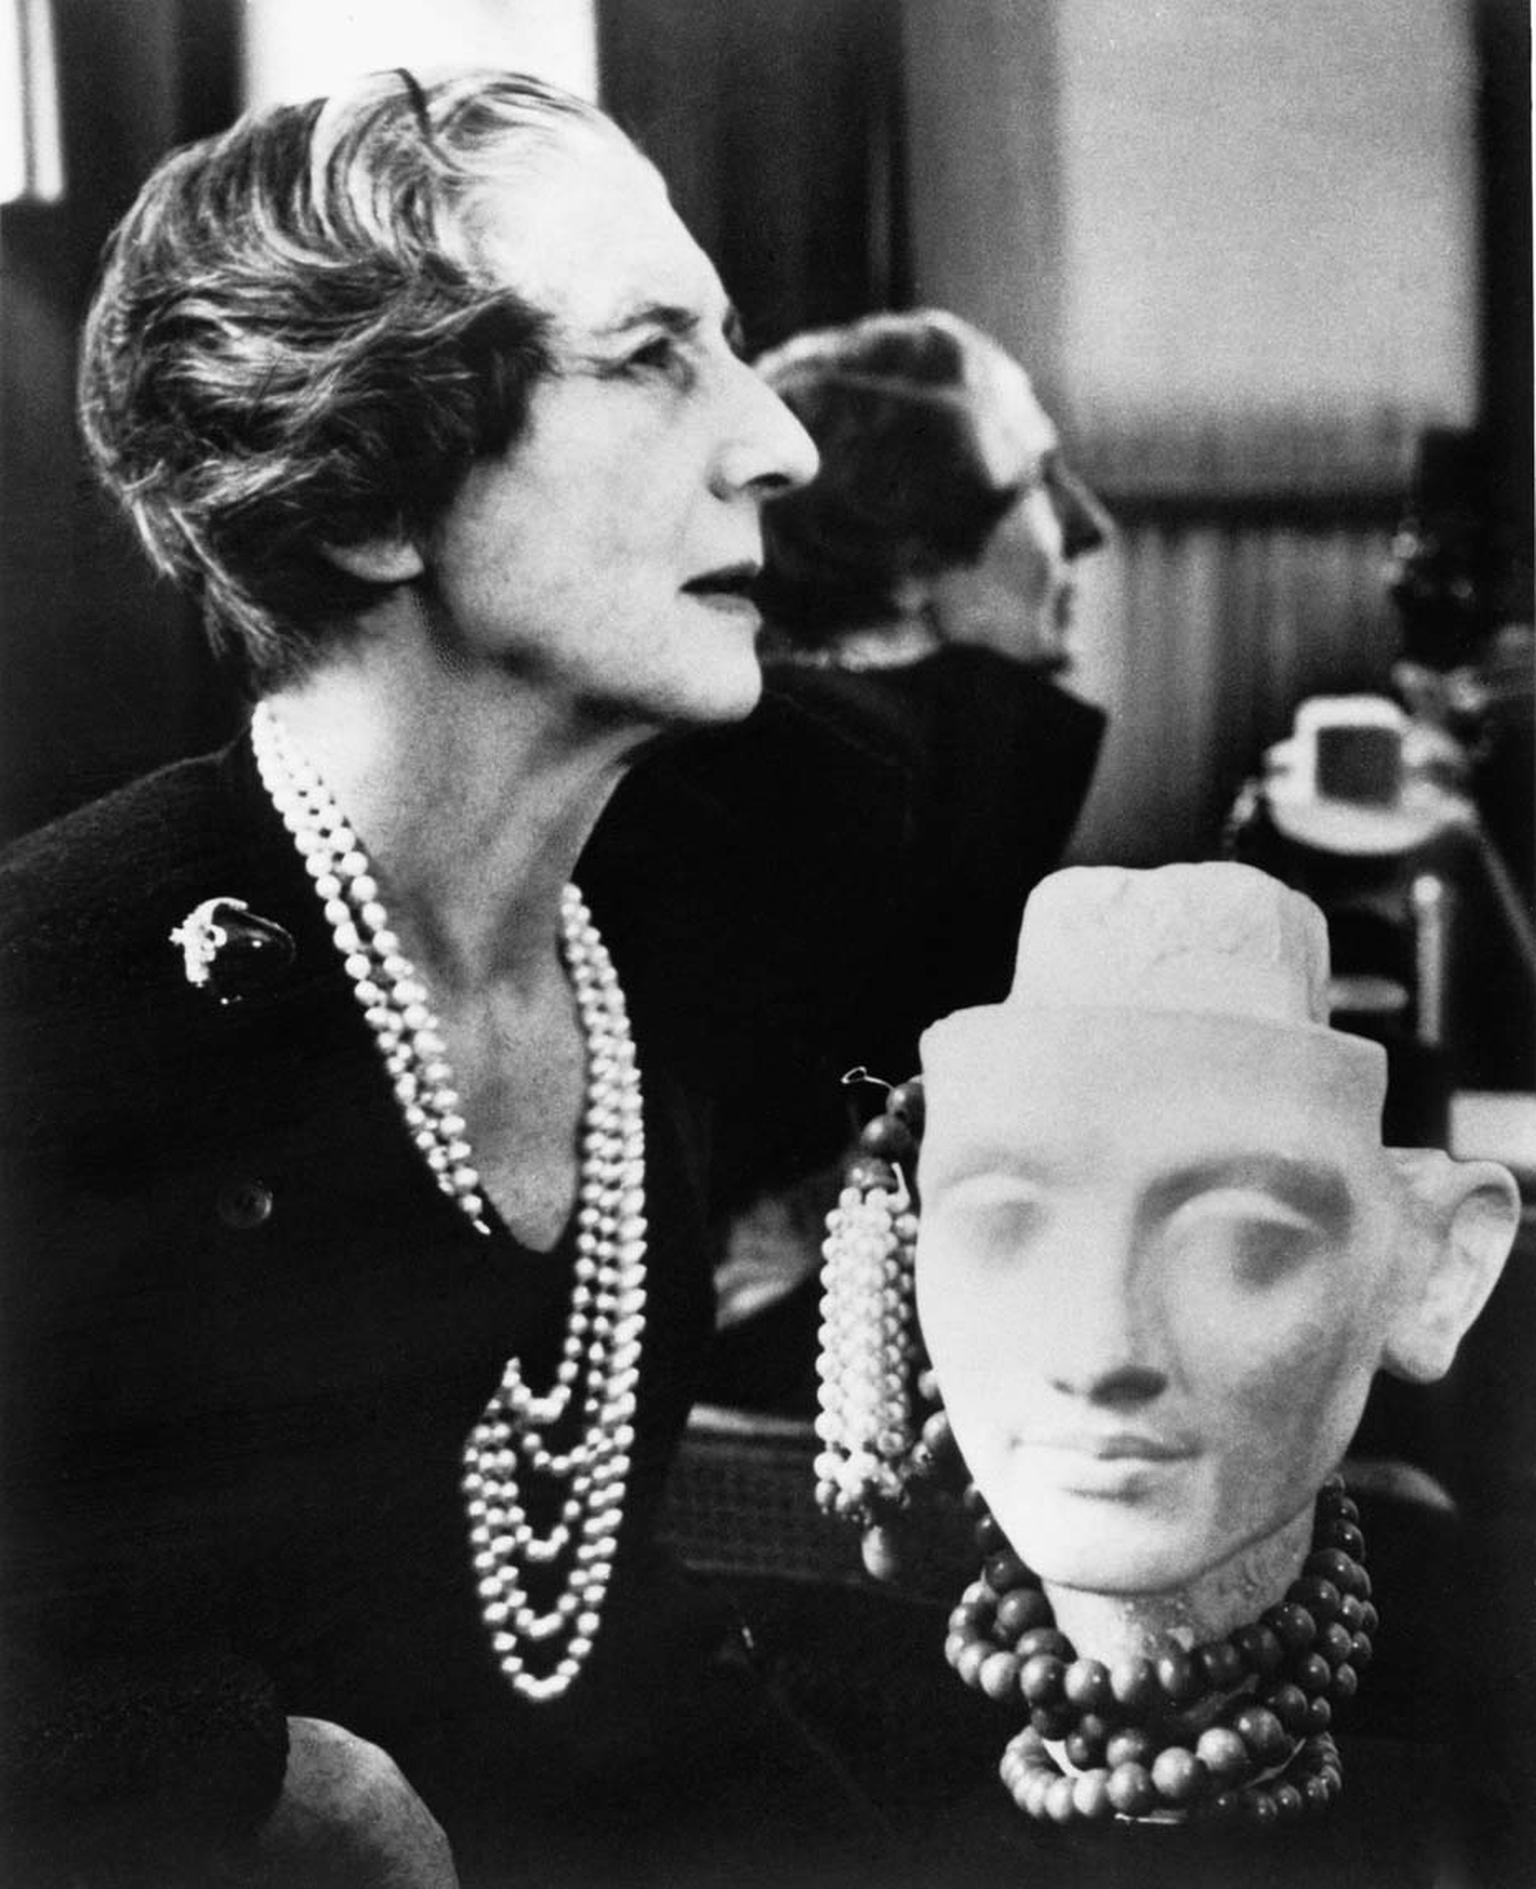 Jeanne Toussaint, Cartier's Artistic Director of Jewellery, is remembered as a visionary with great taste and character. She was both the muse and the driving force of Cartier style in the 20th century.